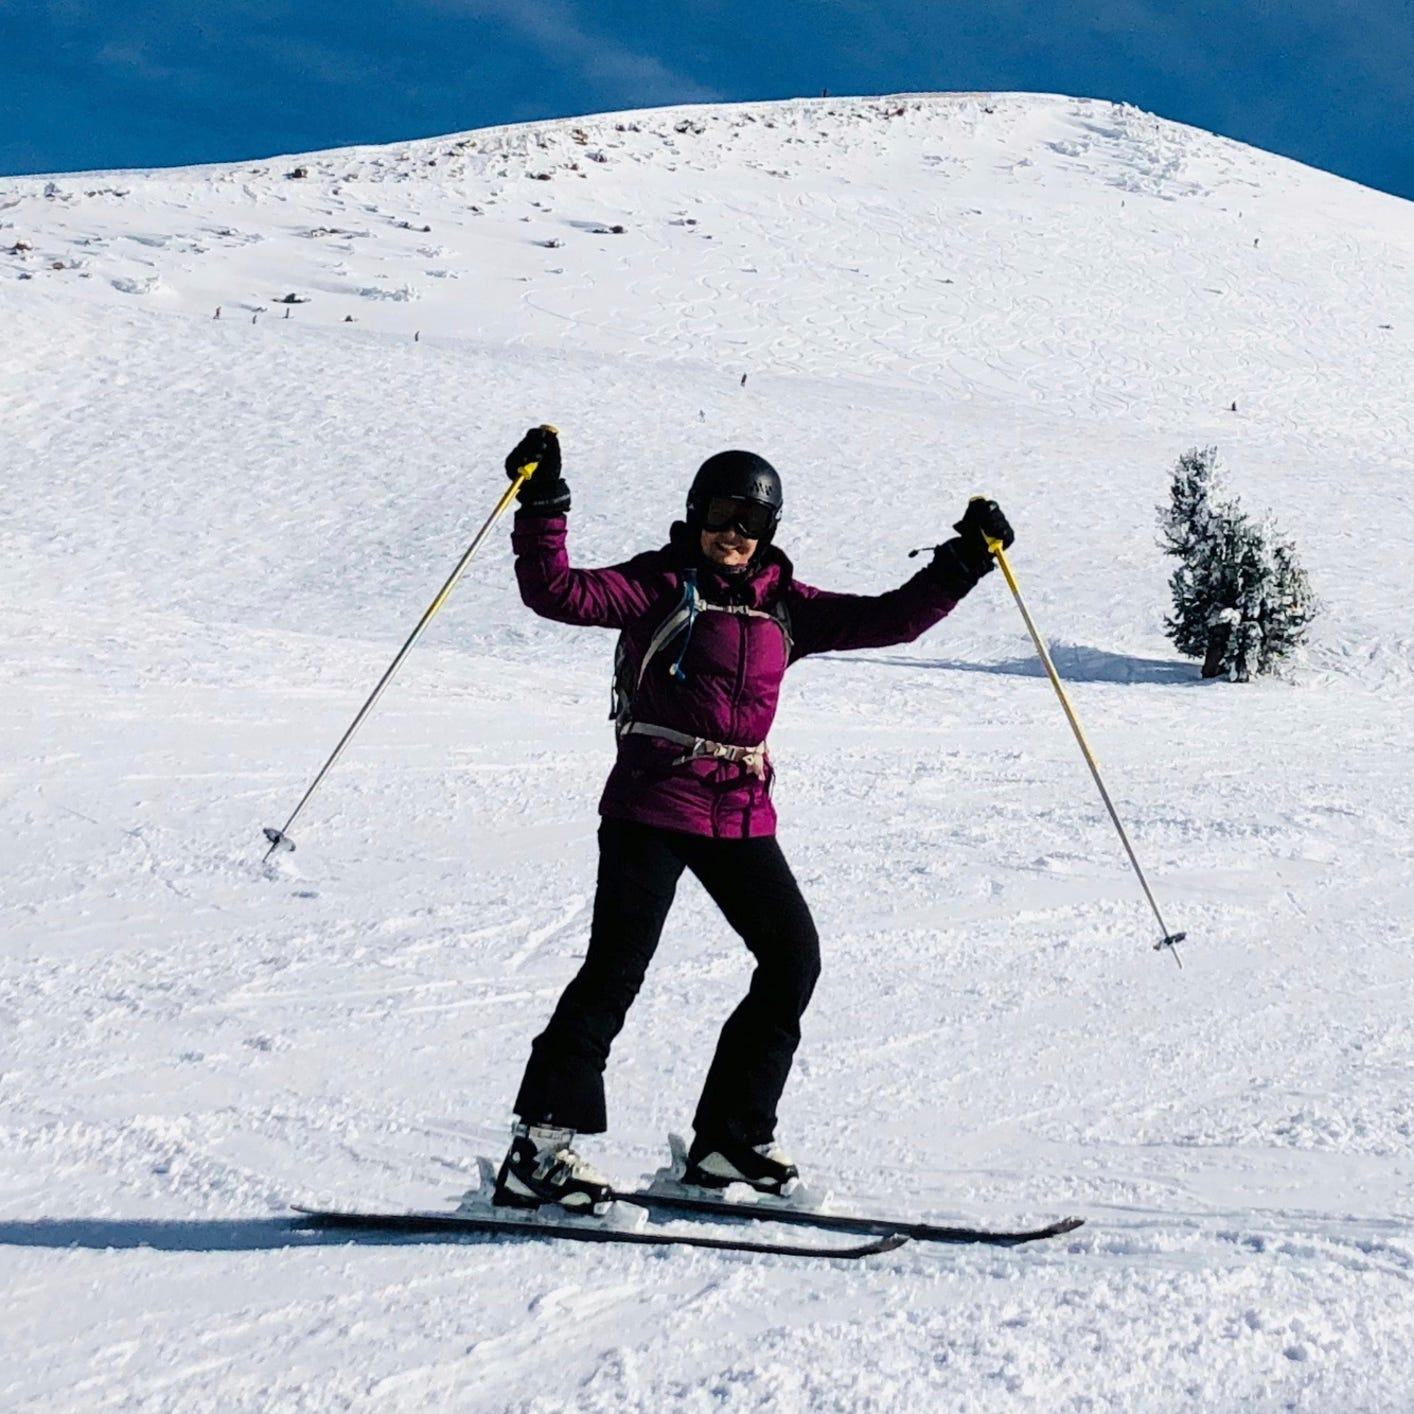 A skier poses for a photo at Mammoth Mountain ski resort in Mammoth Lakes, California, on Dec. 7, 2018. Back-to-back storms have blanketed the Sierra Nevada in snow, pushing the snowpack to 106 percent above average.